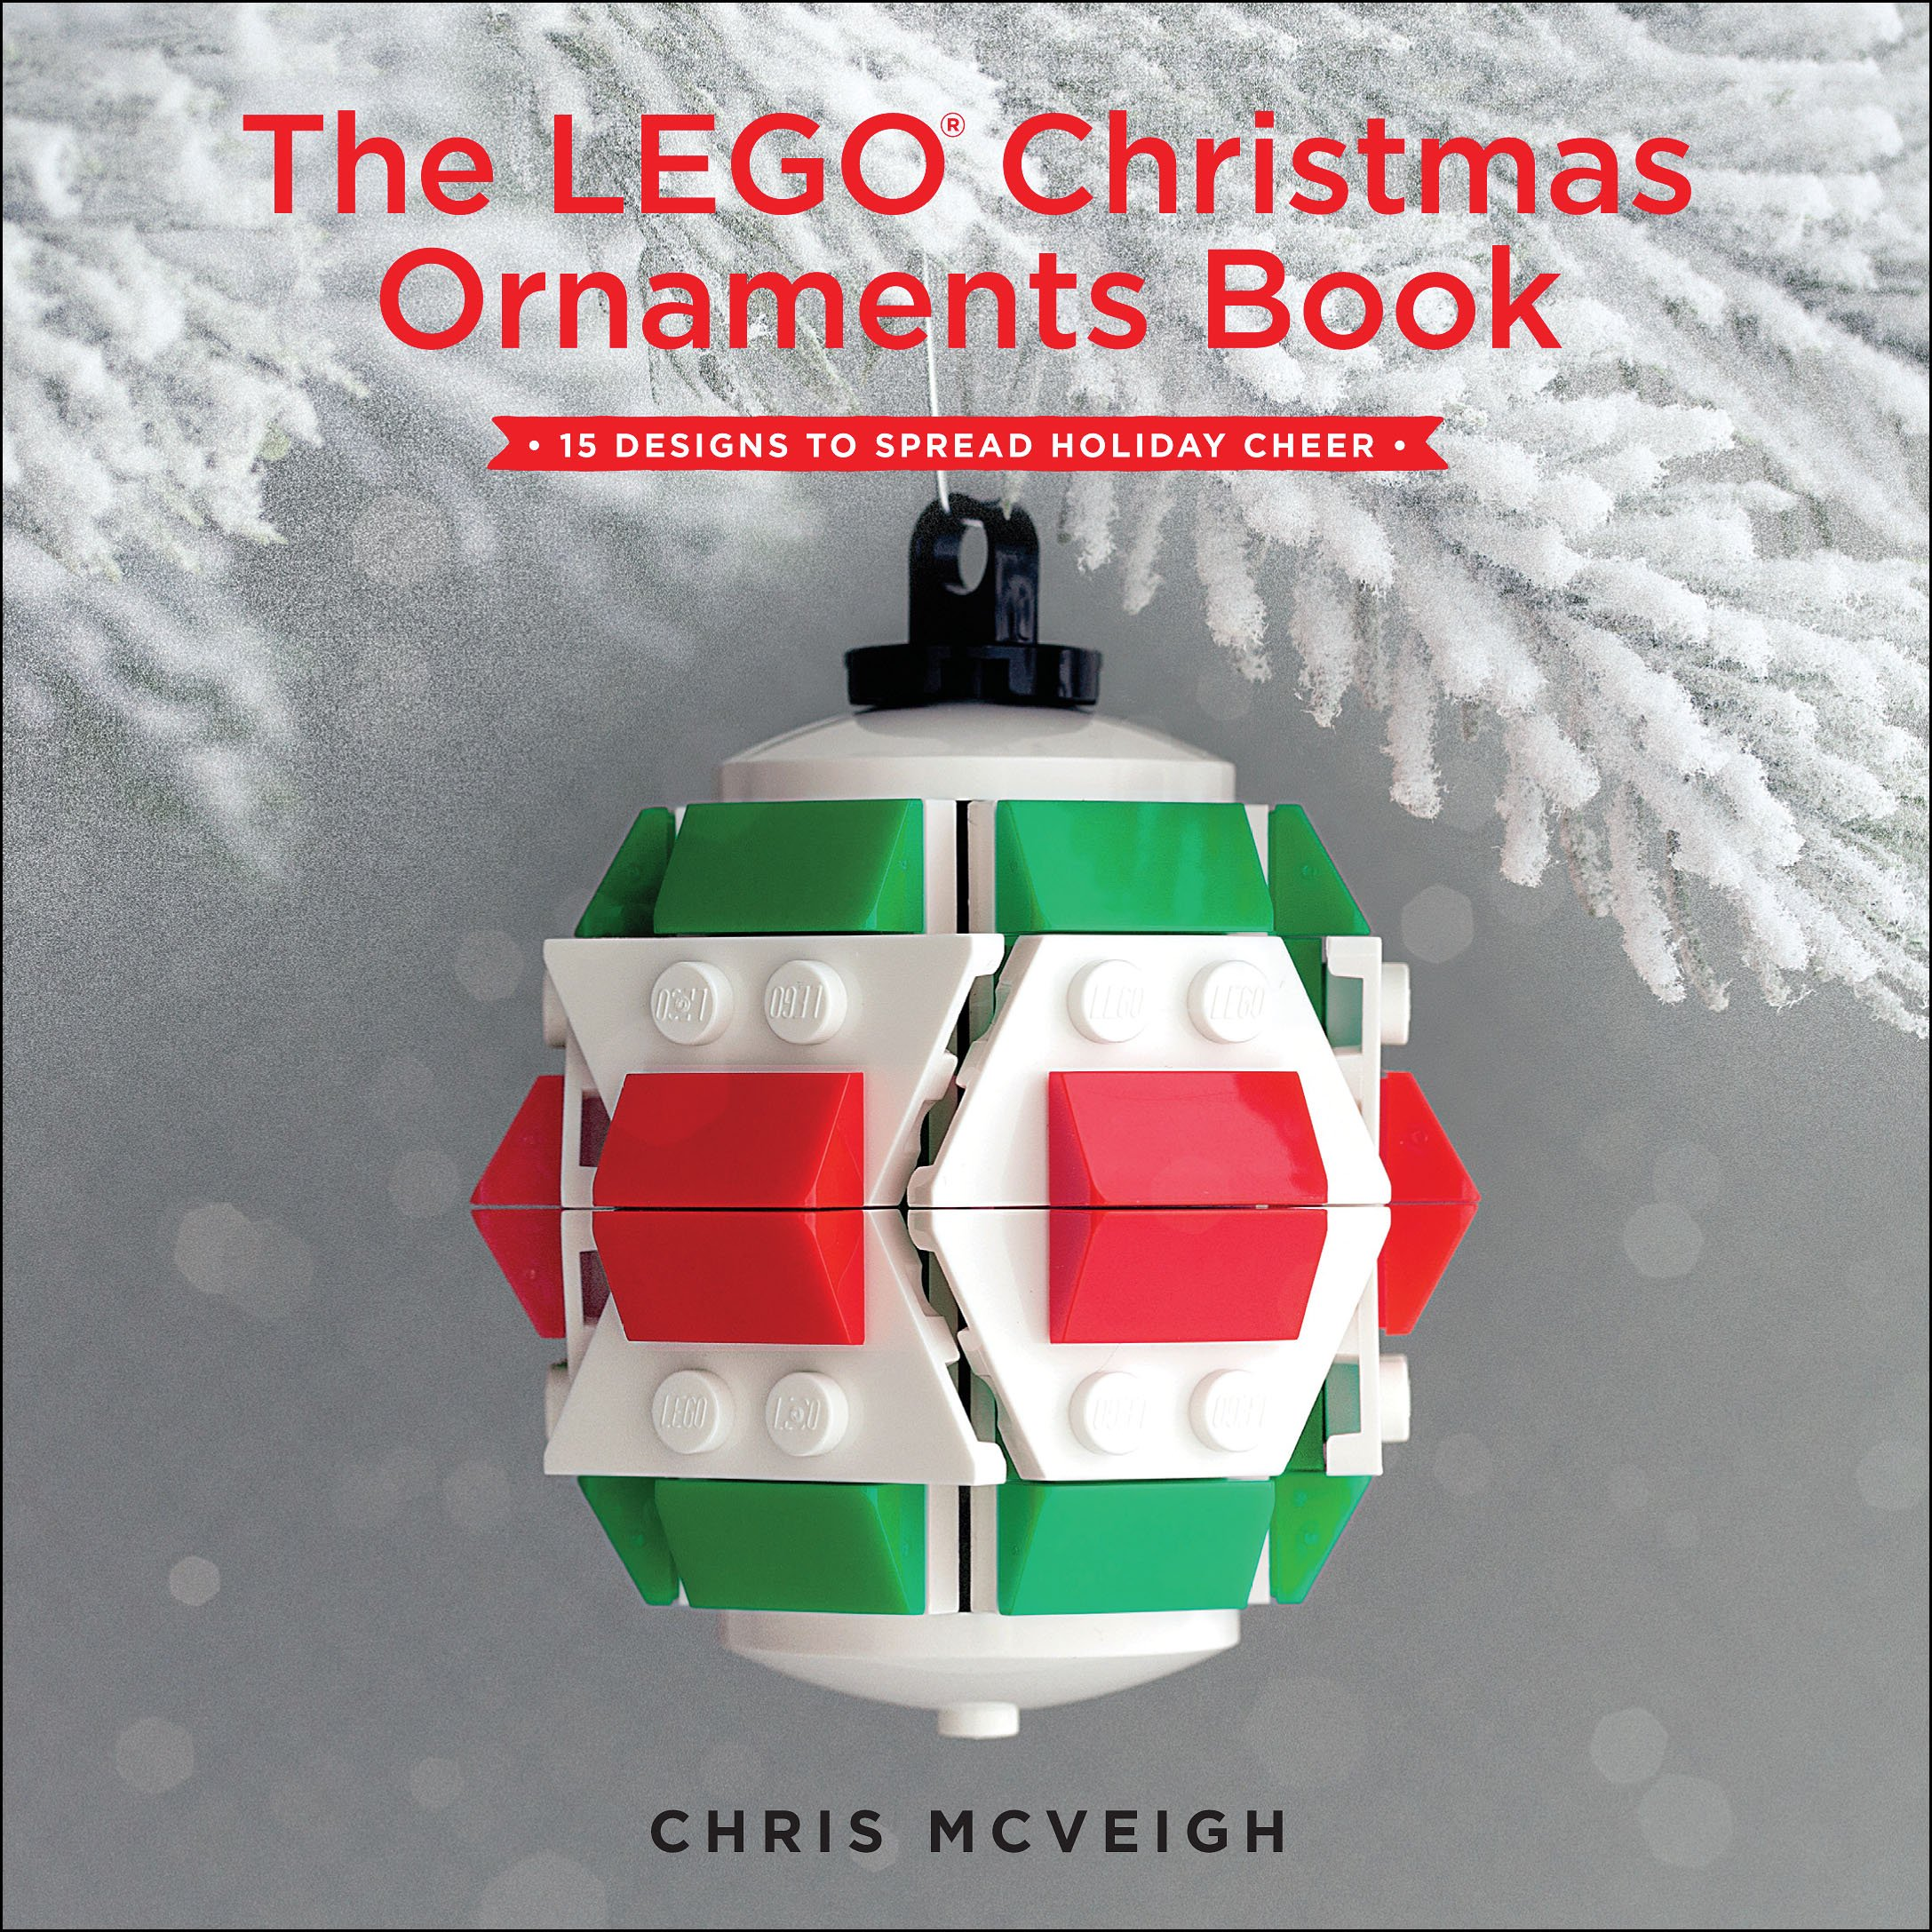 Name christmas ornaments - A Few Days Ago I Received A New Review Copy Of The Lego Christmas Ornaments Book 15 Designs To Spread Holiday Cheer By Chris Mcveigh From No Starch Press